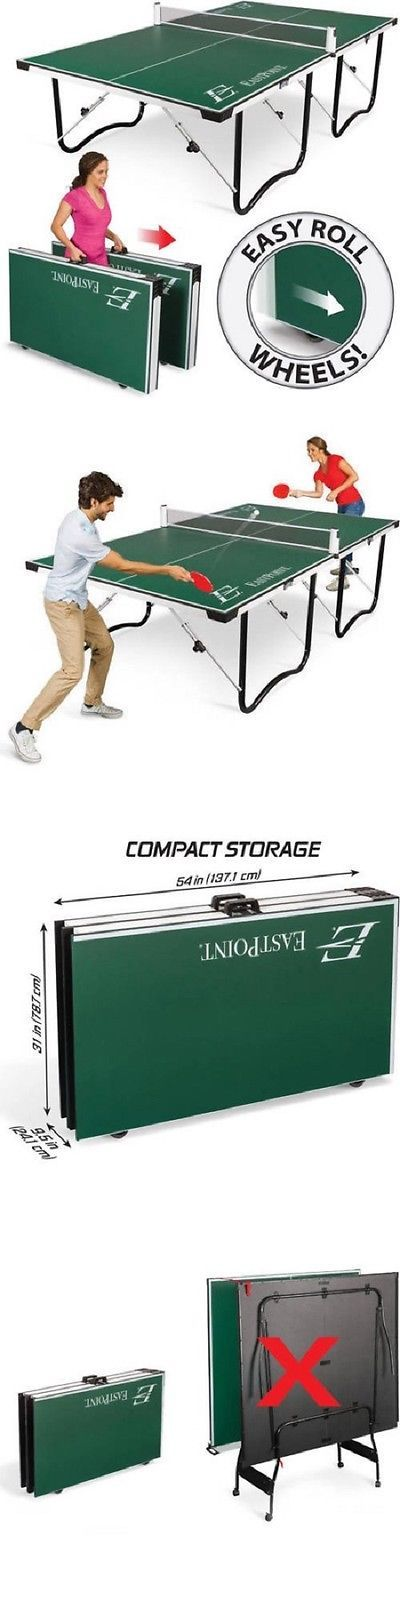 Tables 97075: Indoor Outdoor Folding Compact Ping Pong Storage Game Room Arcade Tennis Table BUY IT NOW ONLY: $299.99